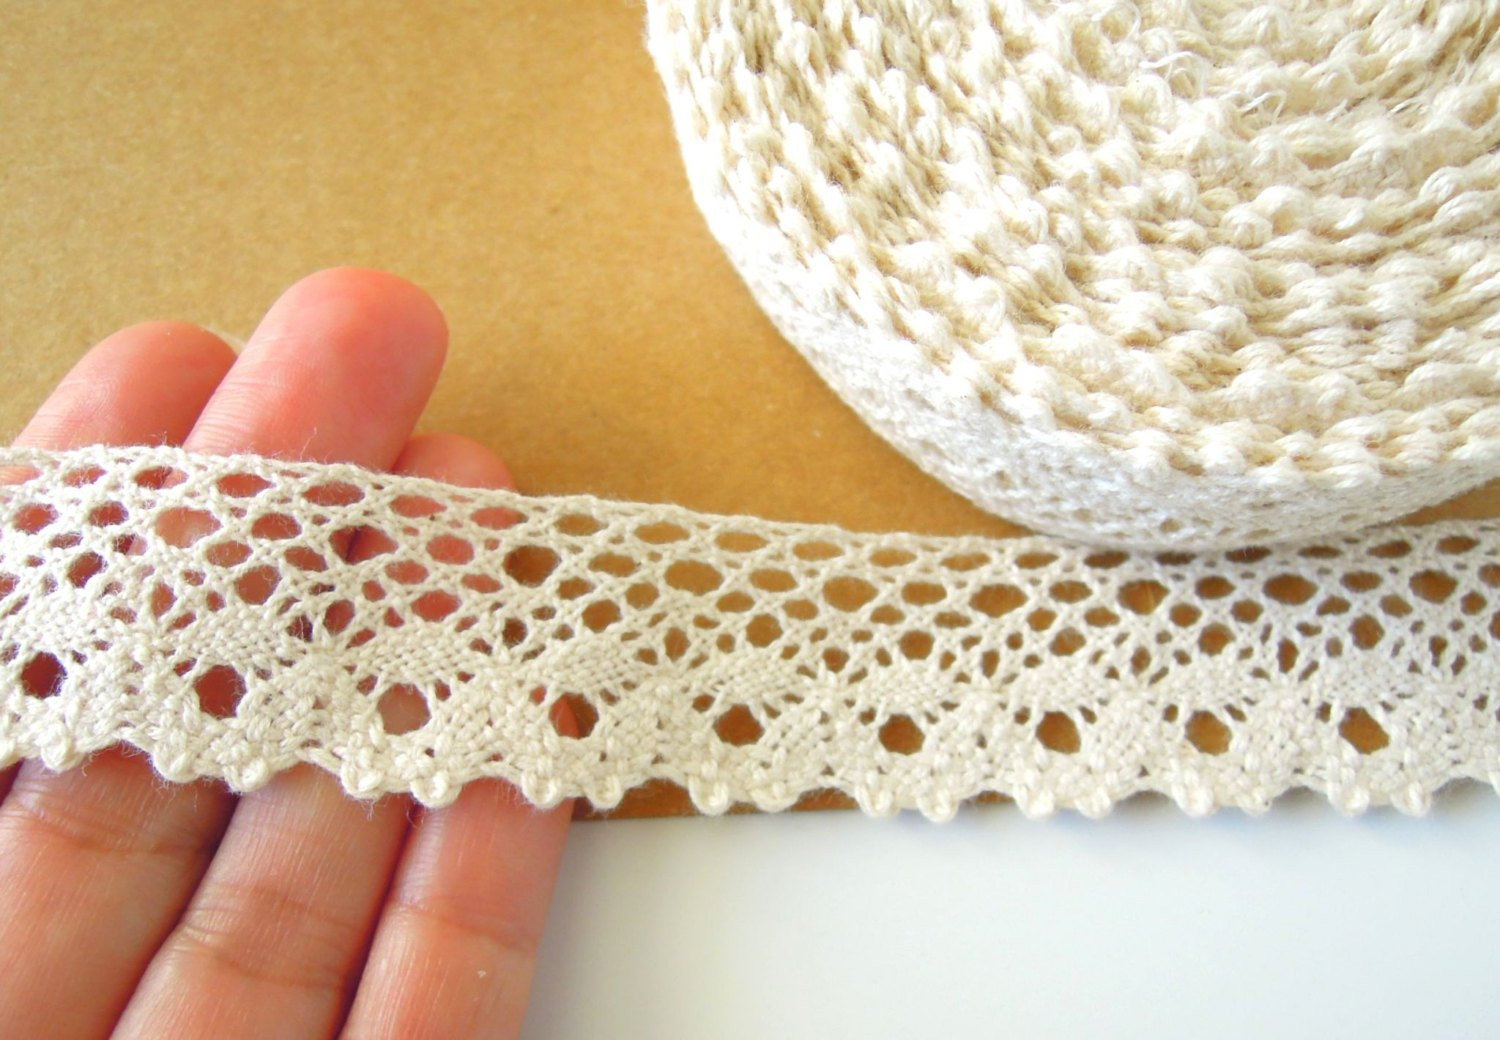 Crochet Lace Trimming Lovely Cream Crochet Lace Trim 25 Mm Cotton Lace Trim Cotton Lace Of Superb 50 Pics Crochet Lace Trimming